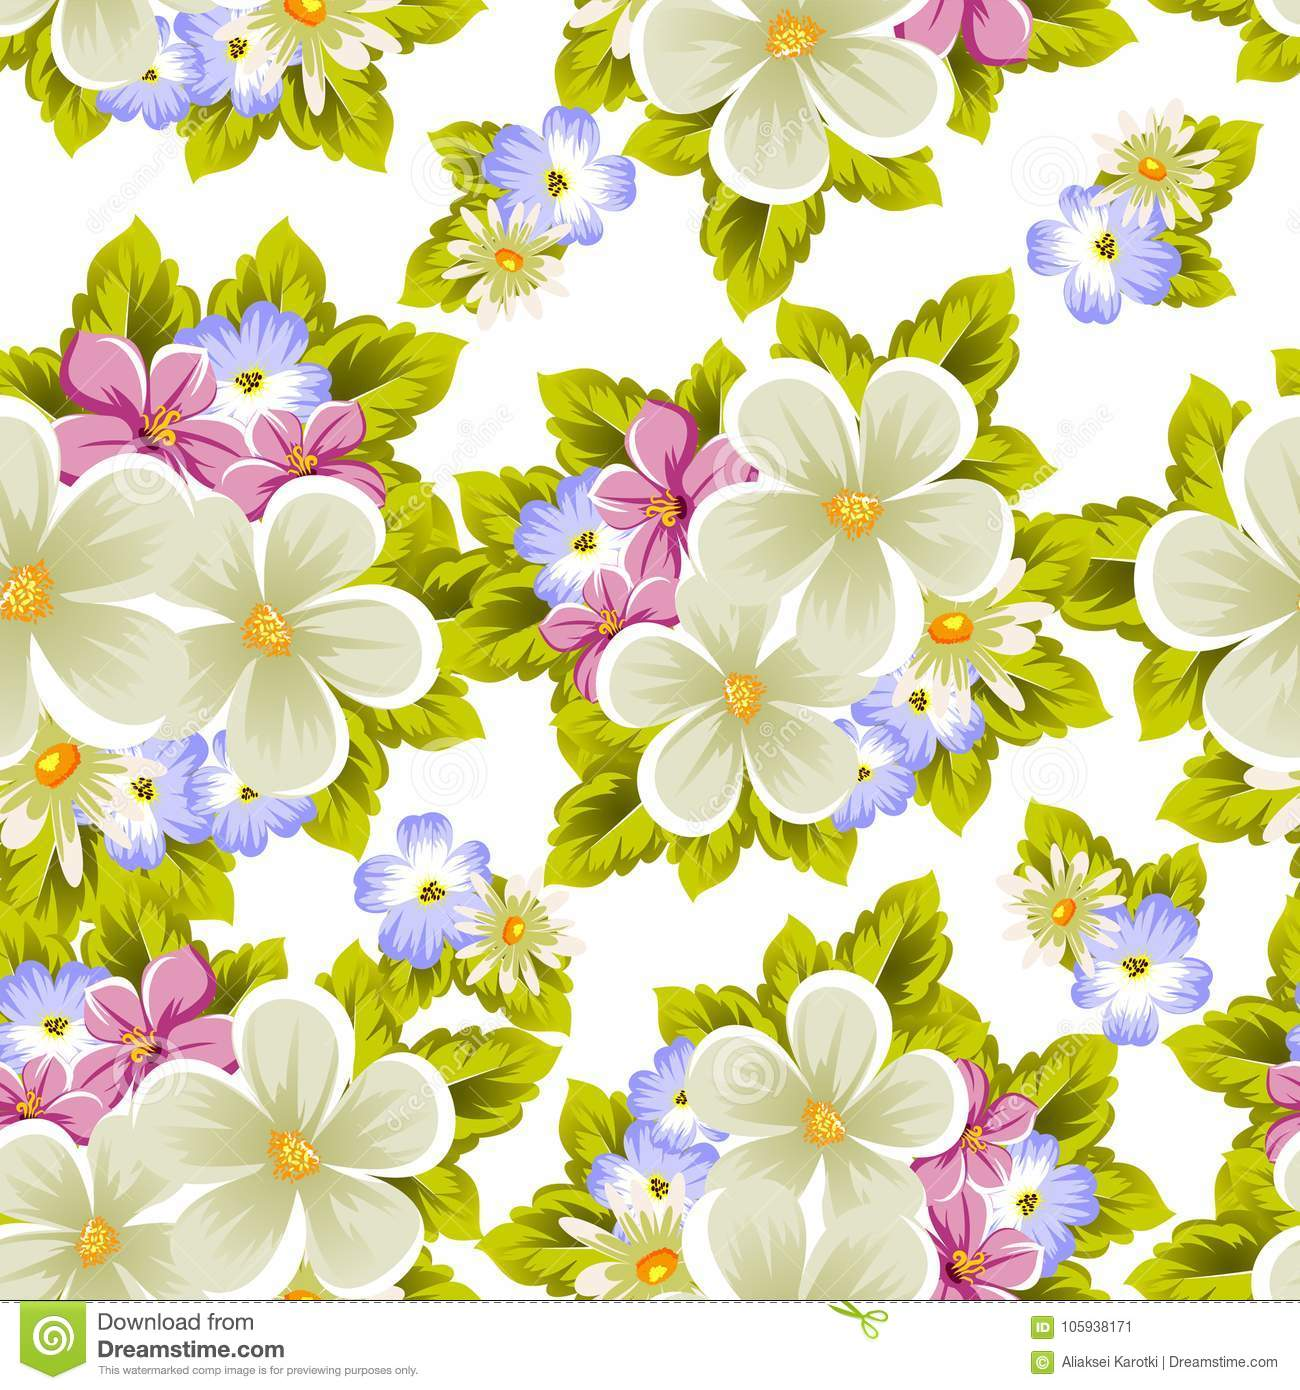 Floral seamless pattern of several flowers for design of cards floral seamless pattern of several flowers for design of cards invitations greeting for birthday wedding party holiday celebration valentines day izmirmasajfo